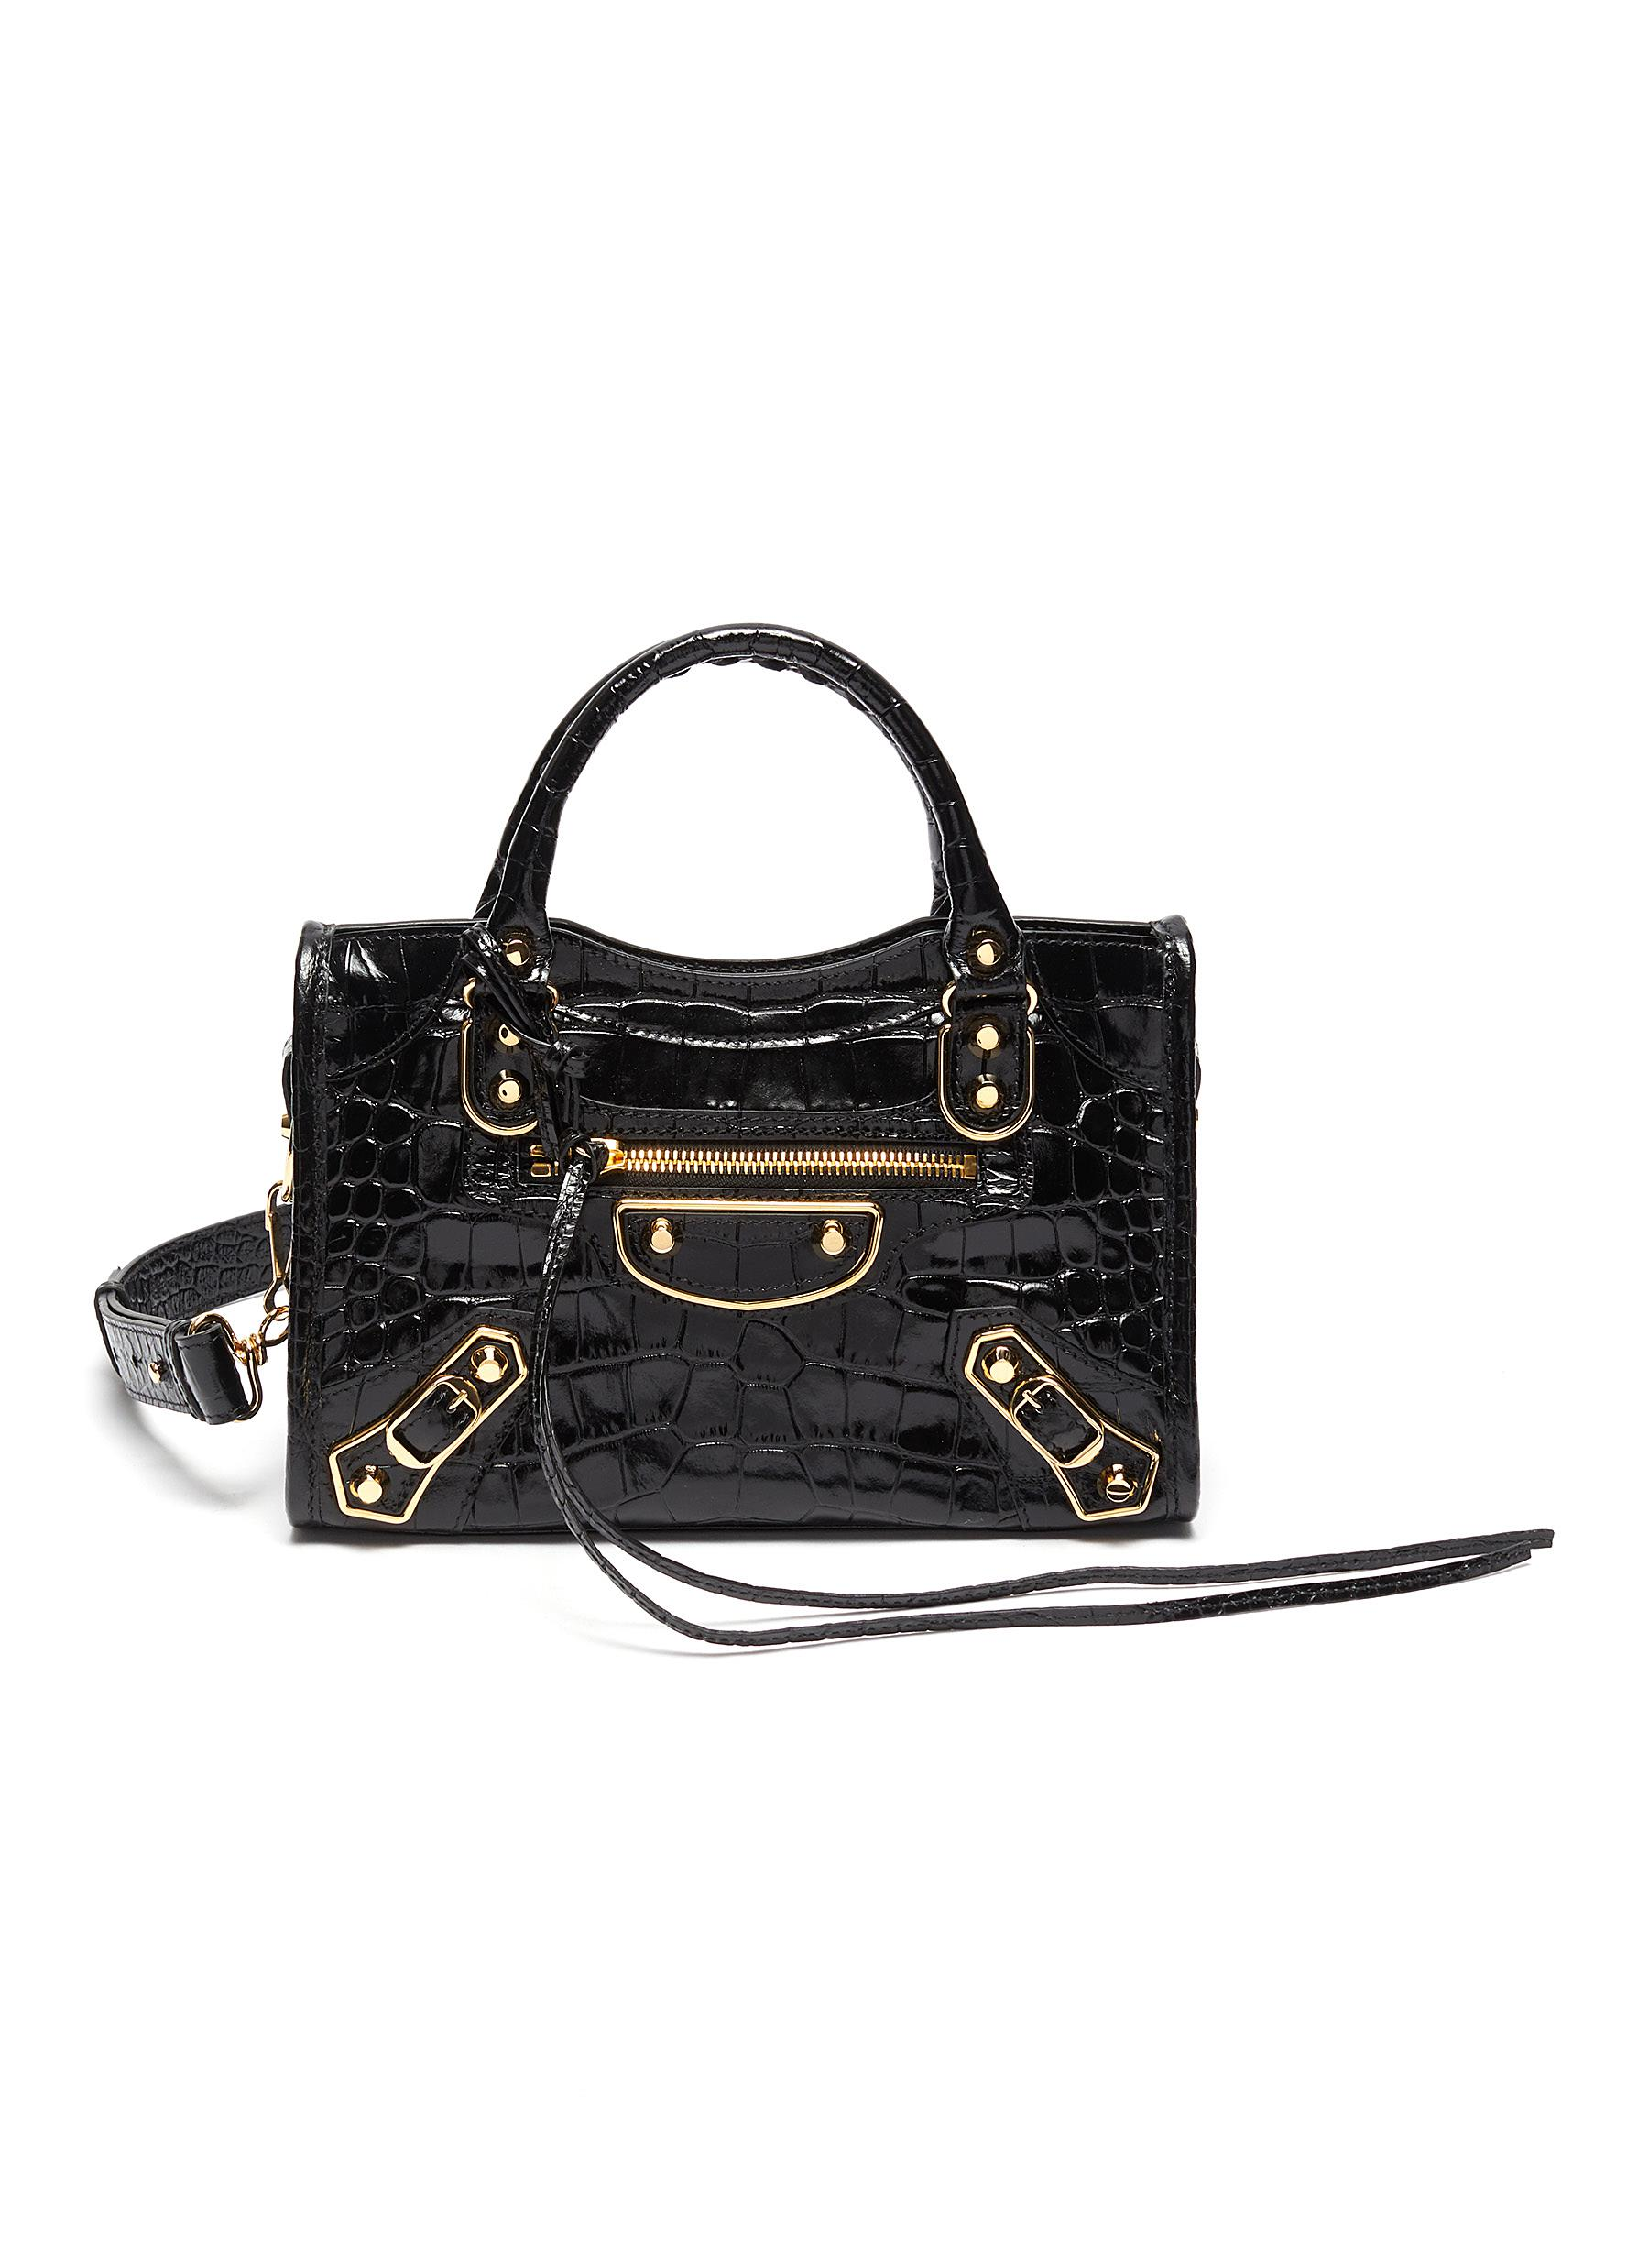 'Mini City AJ' croc embossed leather shoulder bag